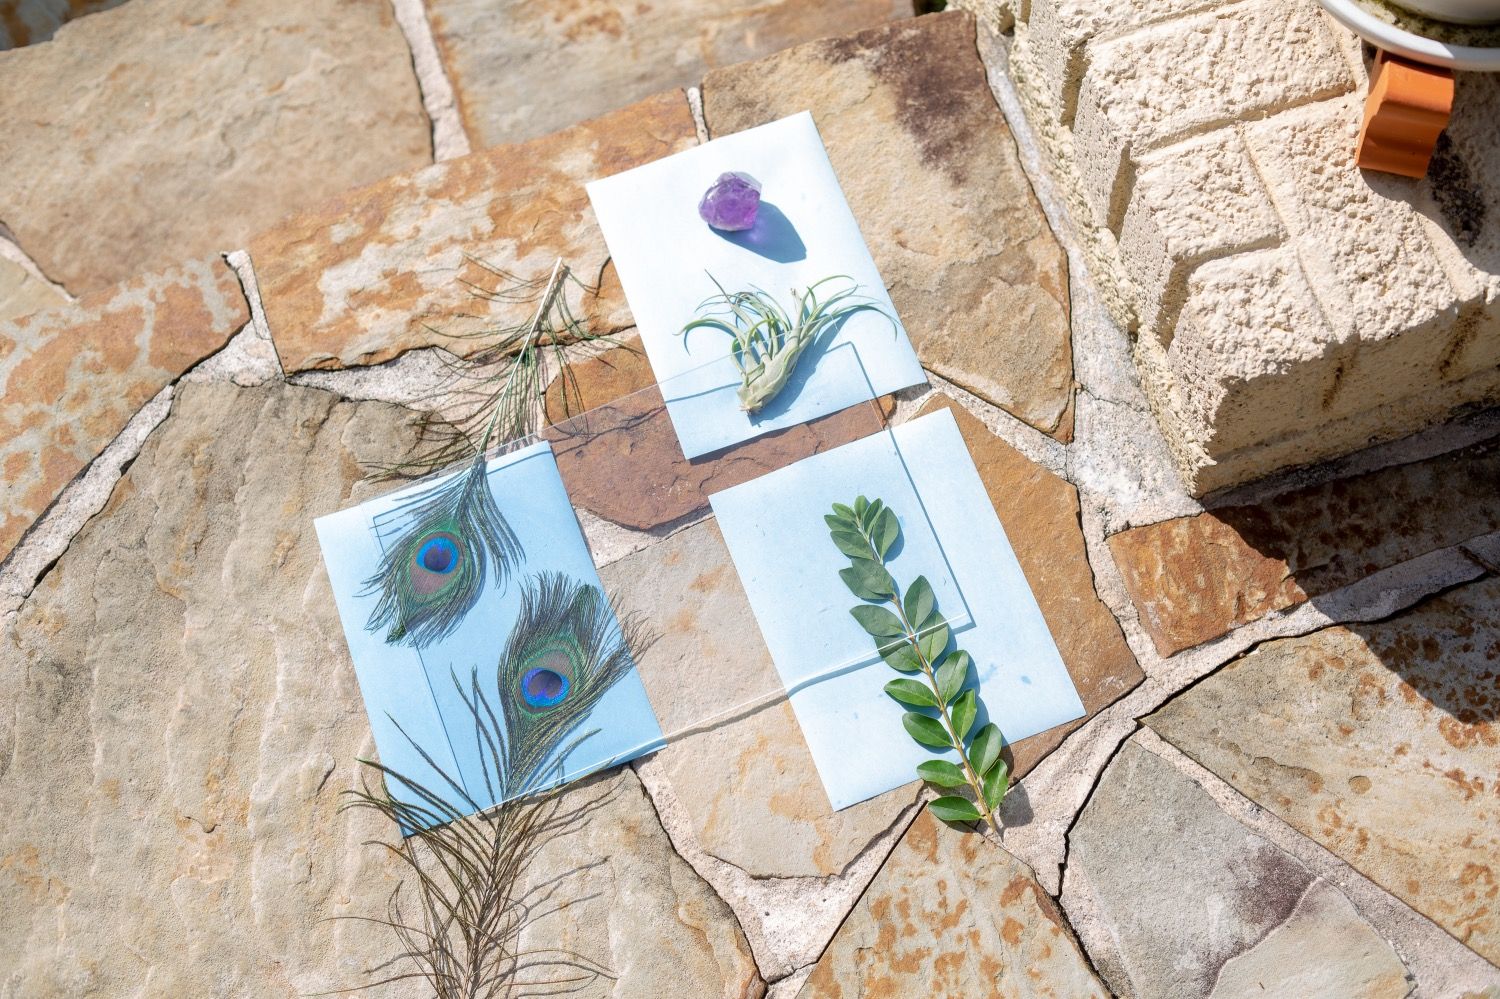 place cyanotypes in the sun with acrylic sheet pop shop america